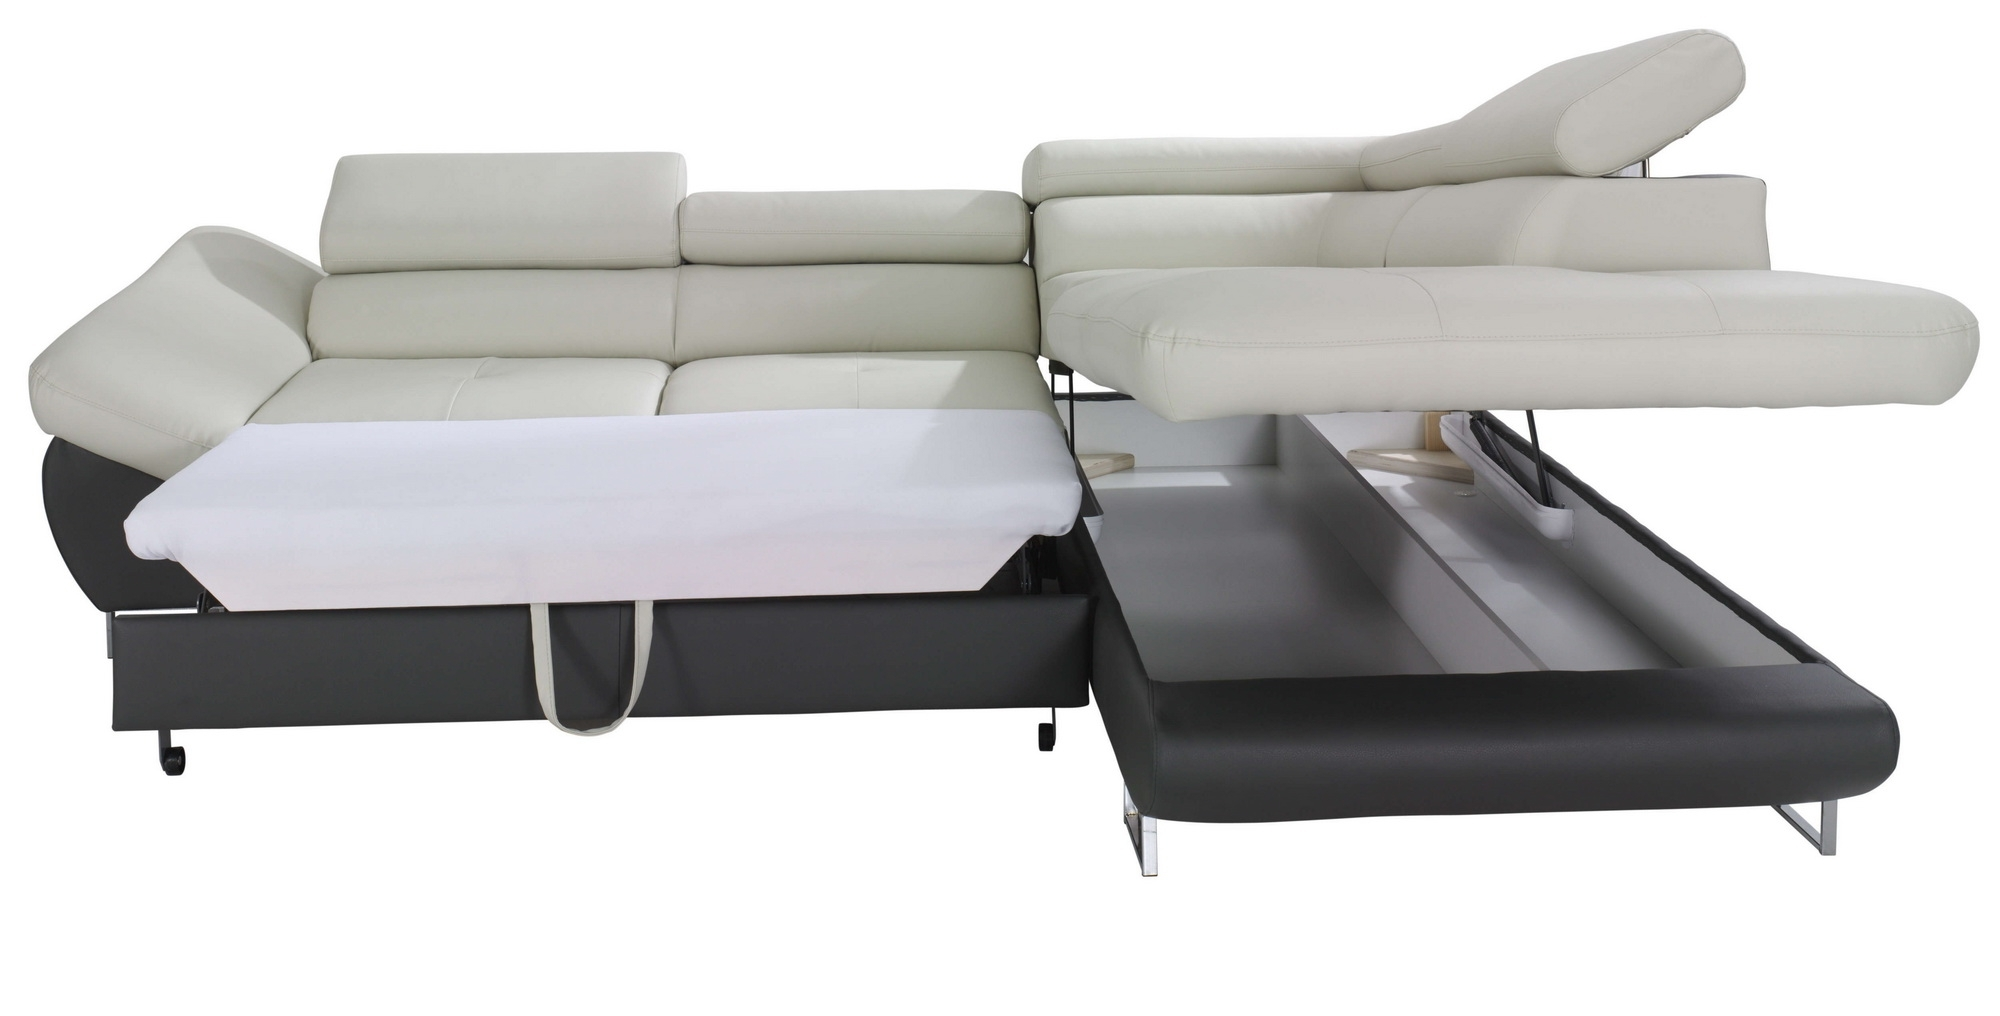 Fabio Sectional Sofa Sleeper With Storage, Creative Furniture In 2017 Chaise Sofa Beds With Storage (View 8 of 15)